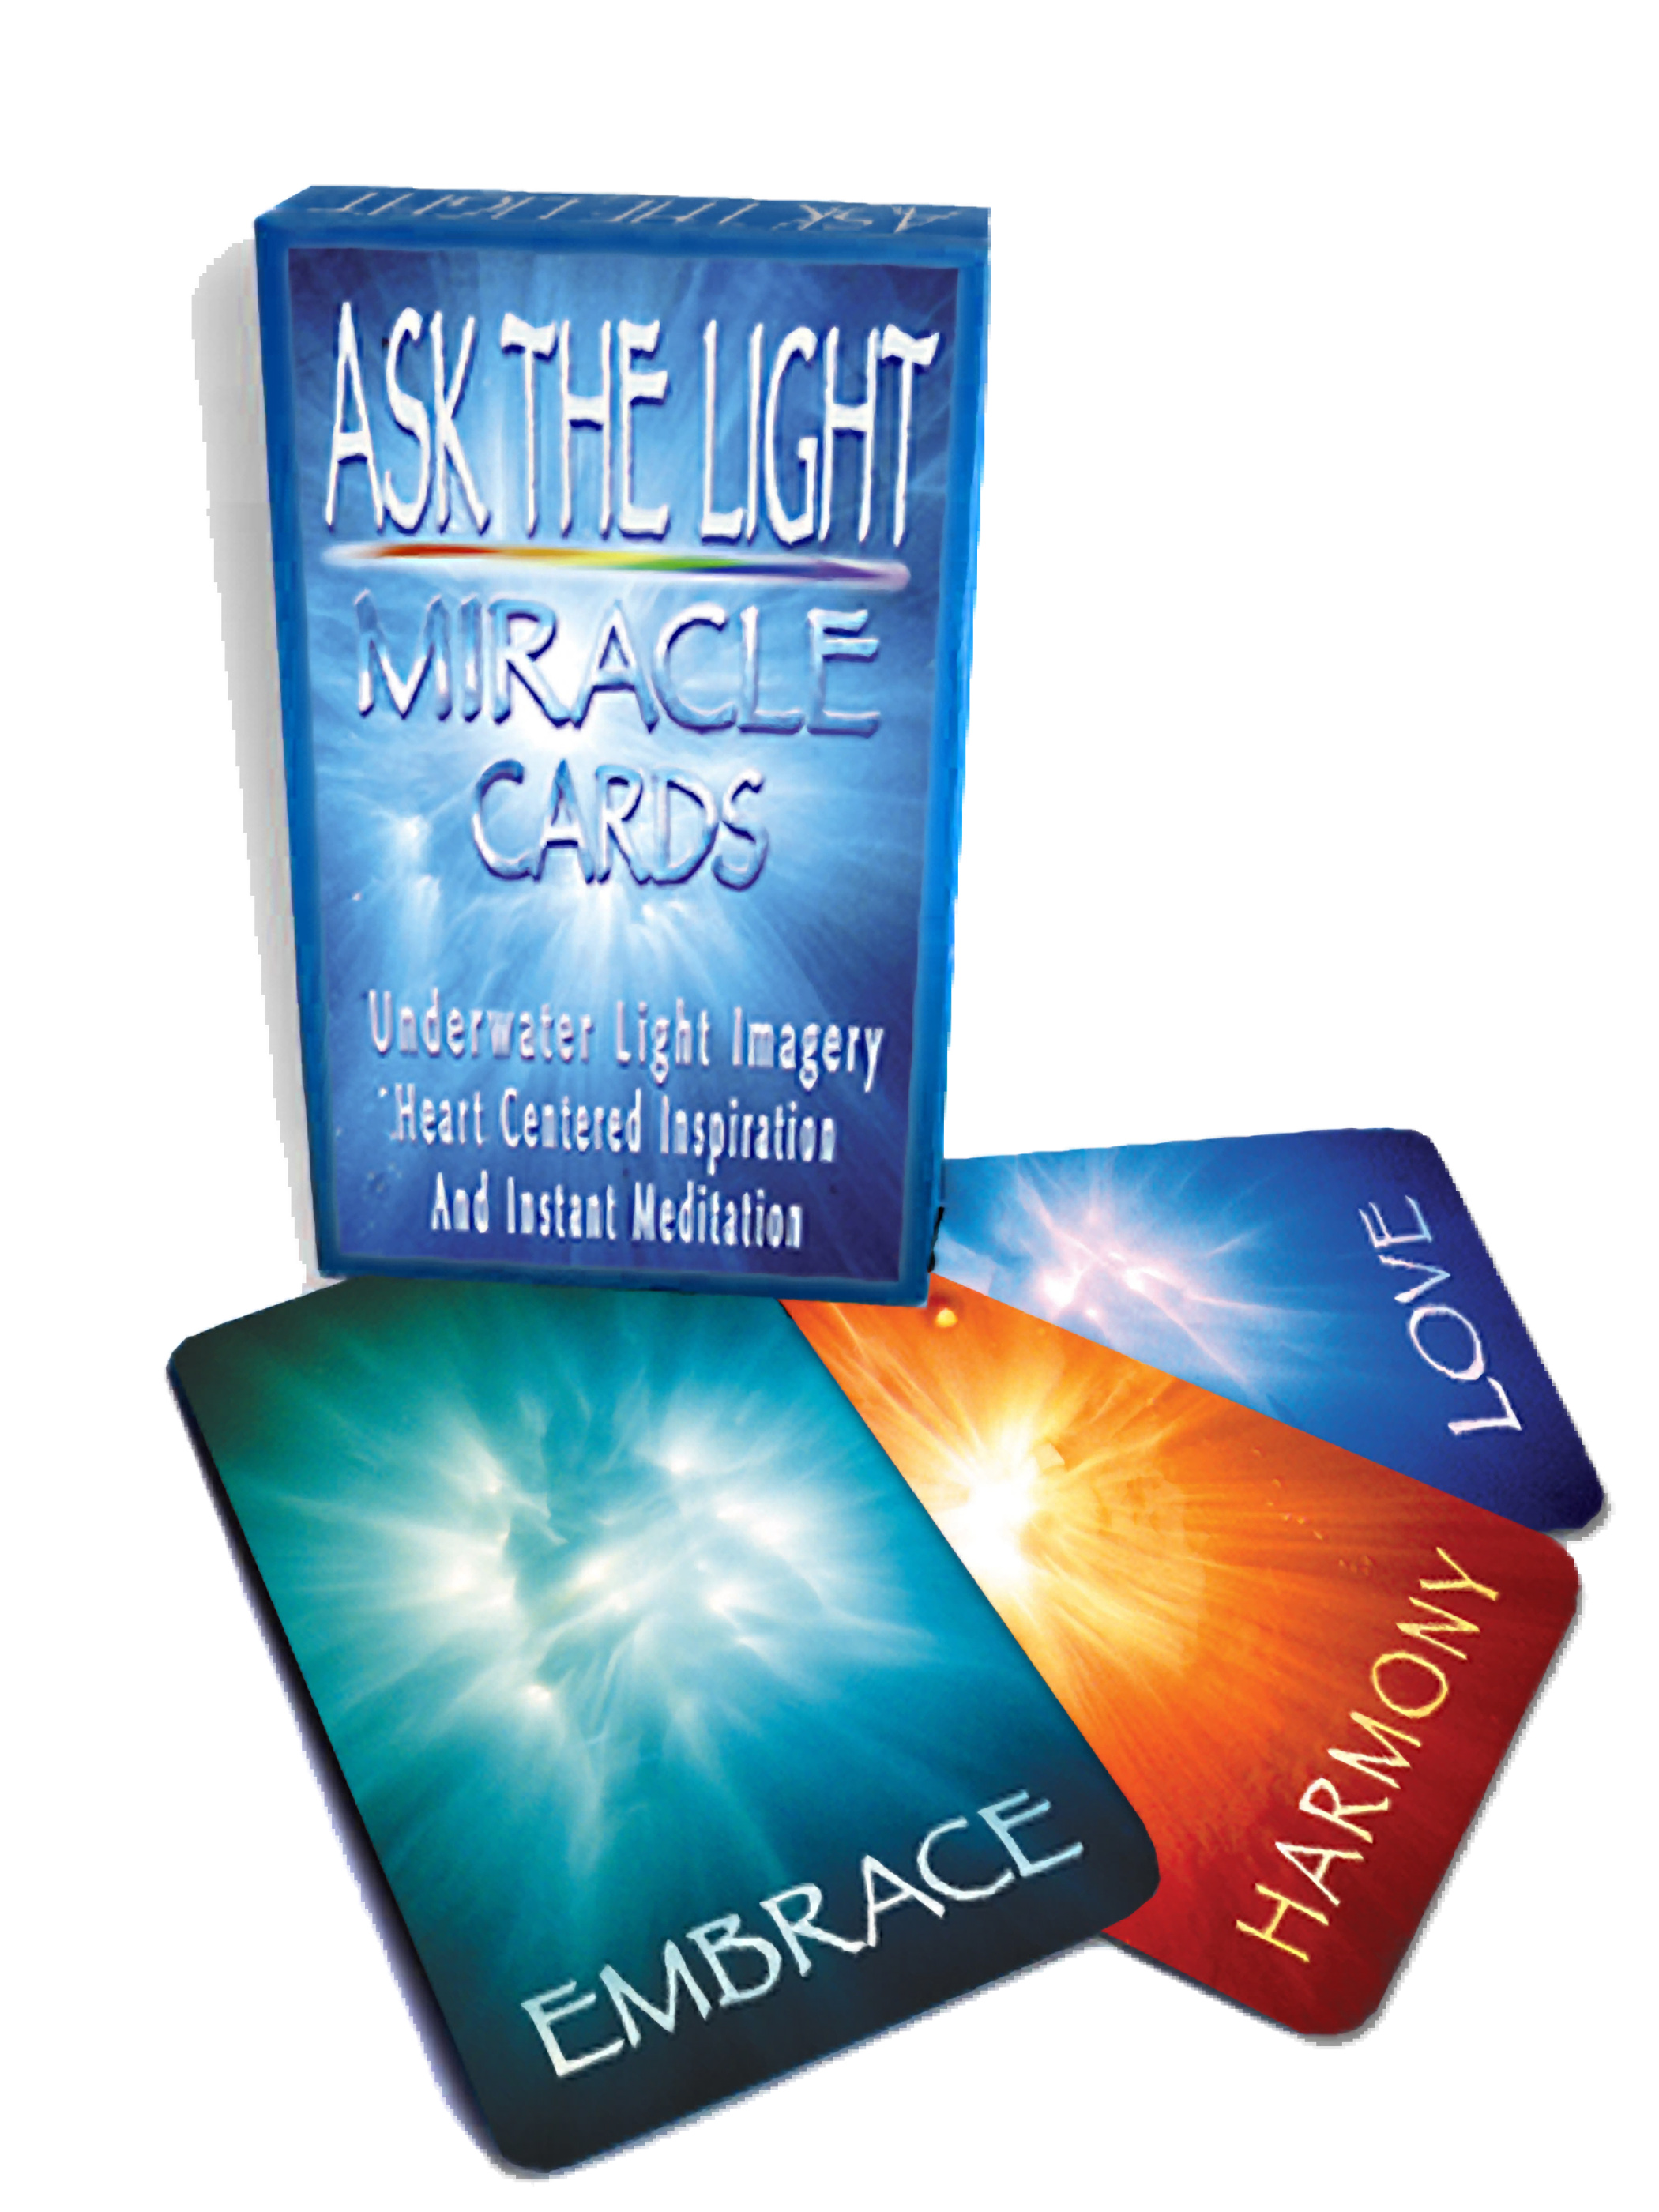 Ask the Light Miracle Cards are Healing.  They offer a way to develop your intuition and expand your awareness of your inner world.